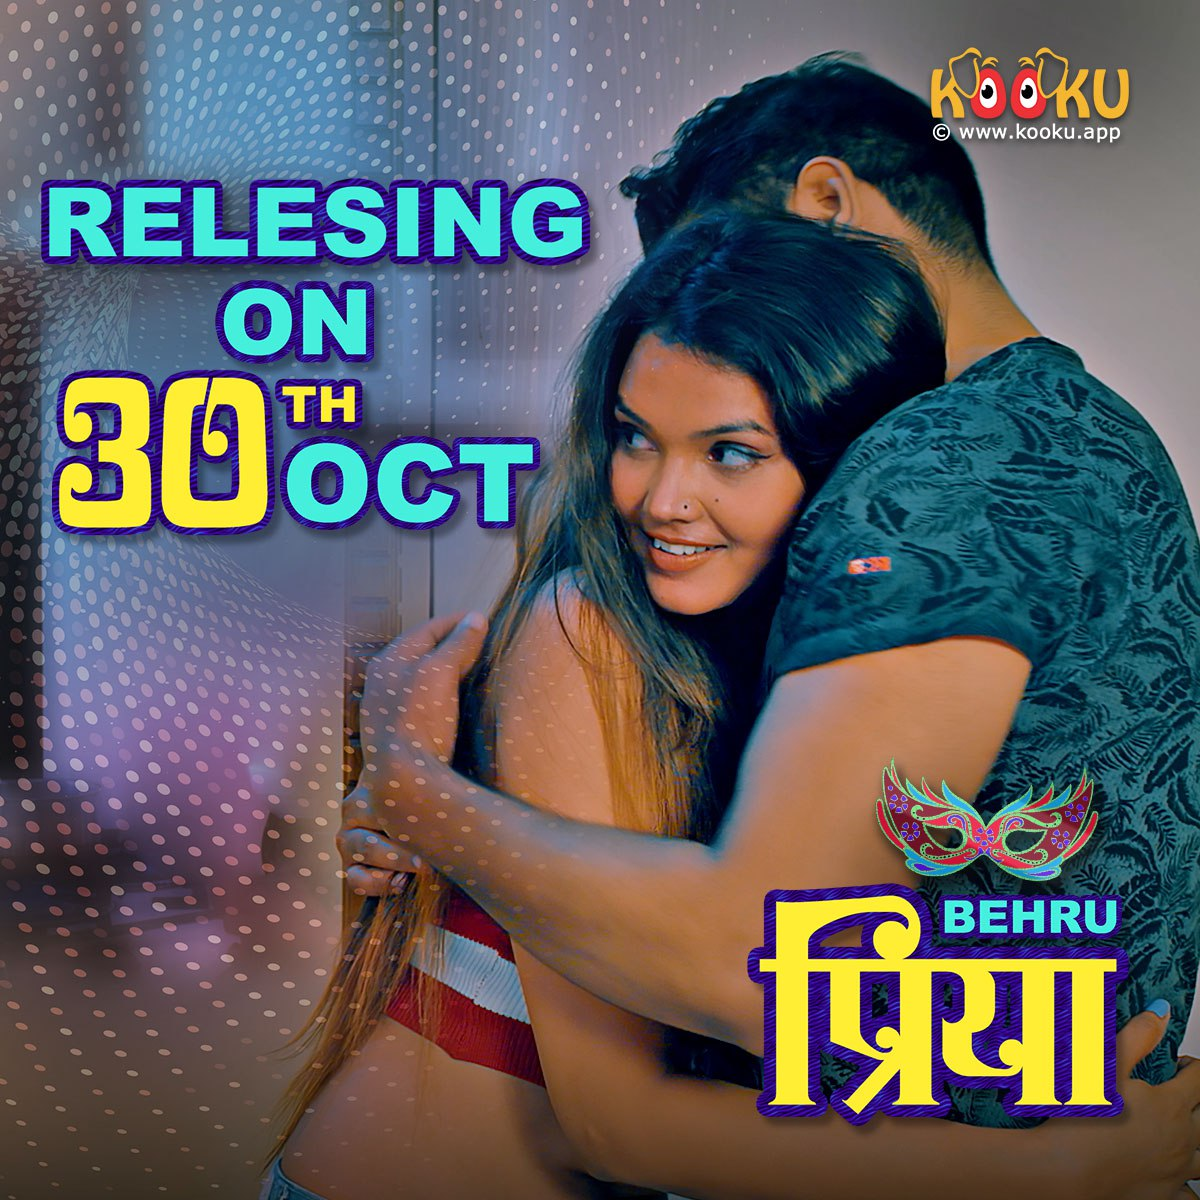 Behrupriya 2020 S01 Hindi Kooku App Web Series Official Trailer 1080p HDRip Free Download